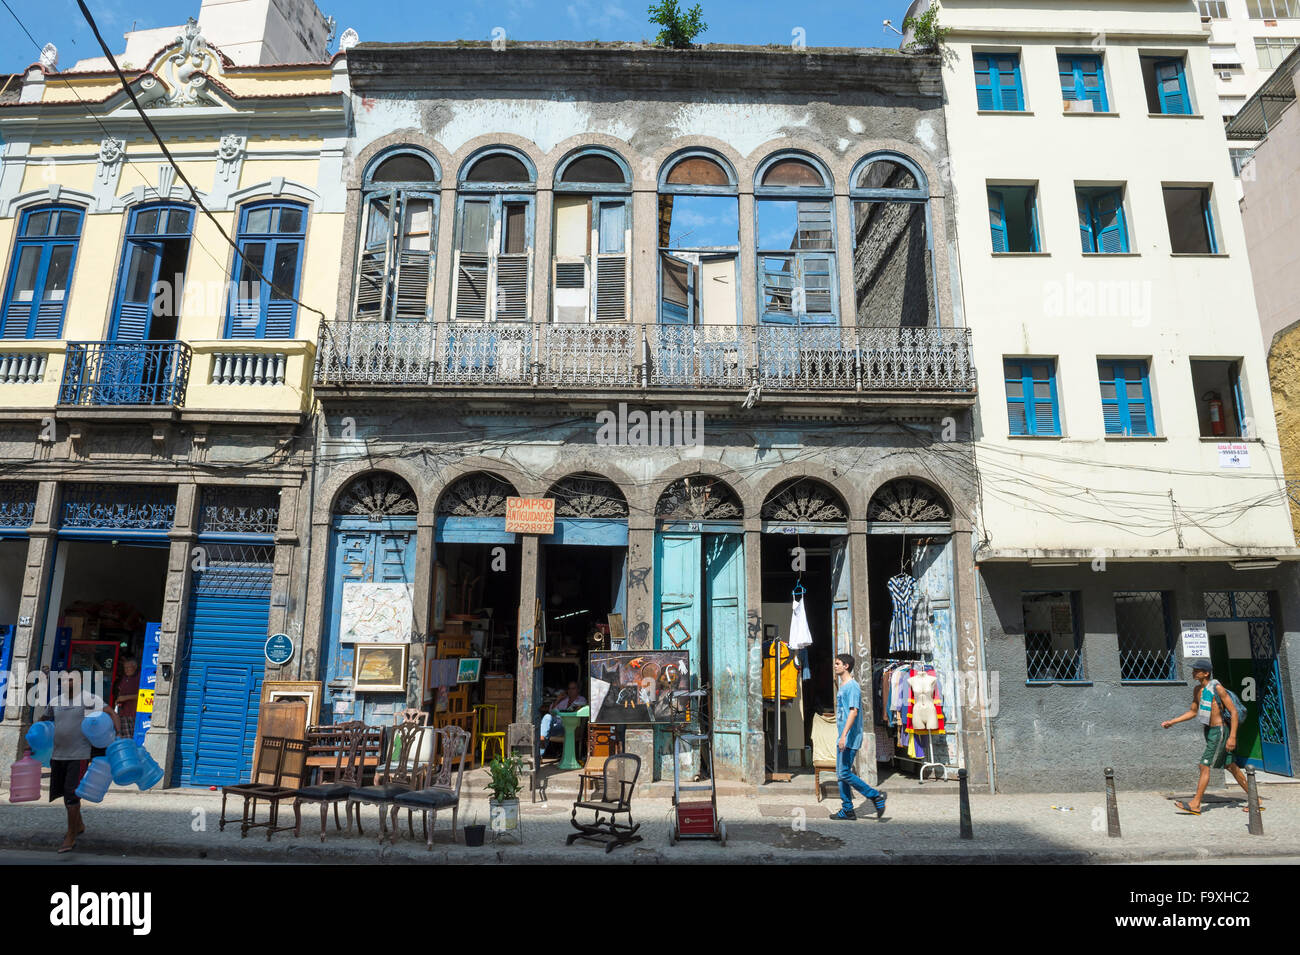 RIO DE JANEIRO, BRAZIL - OCTOBER 22, 2015: Pedestrians pass in front of eclectic architecture in the Santa Teresa Stock Photo